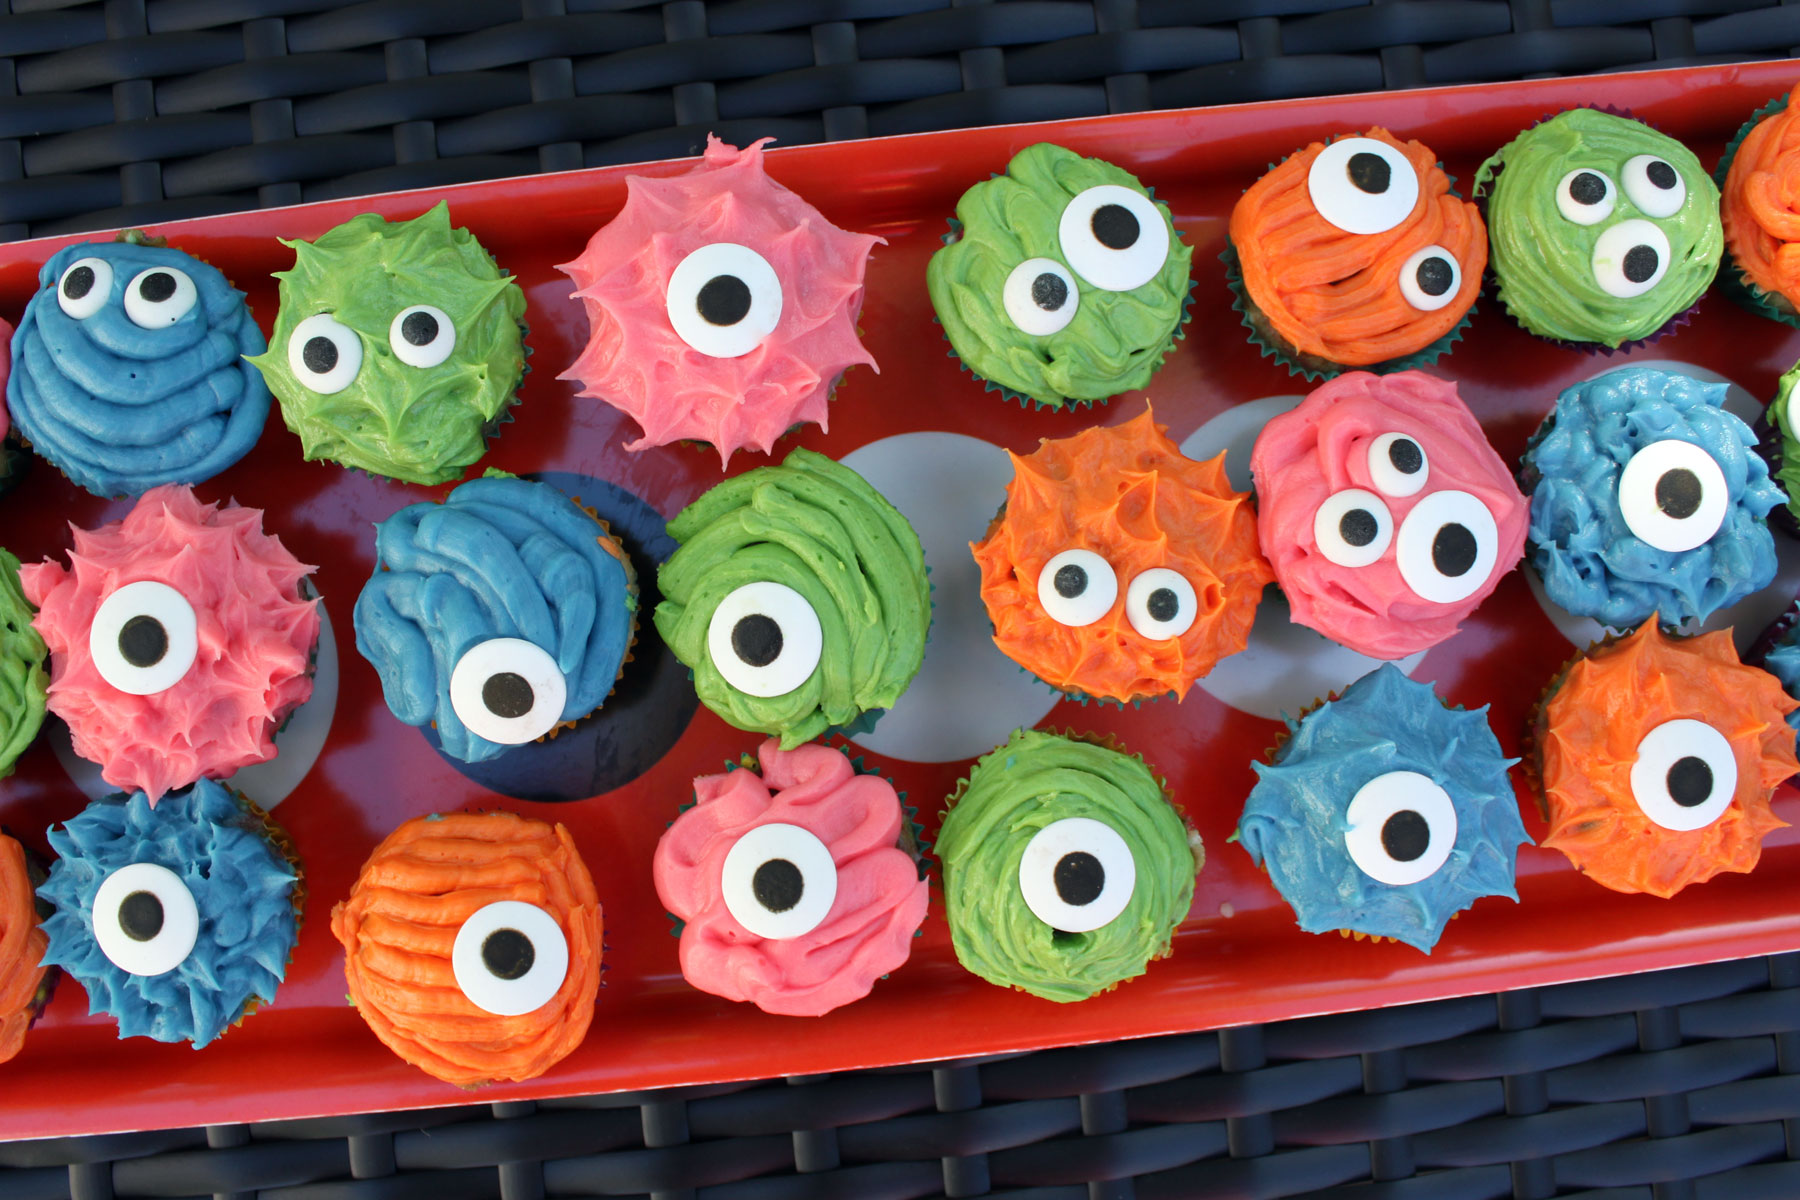 Cute Halloween Monster Cupcakes Images amp Pictures Moyuk